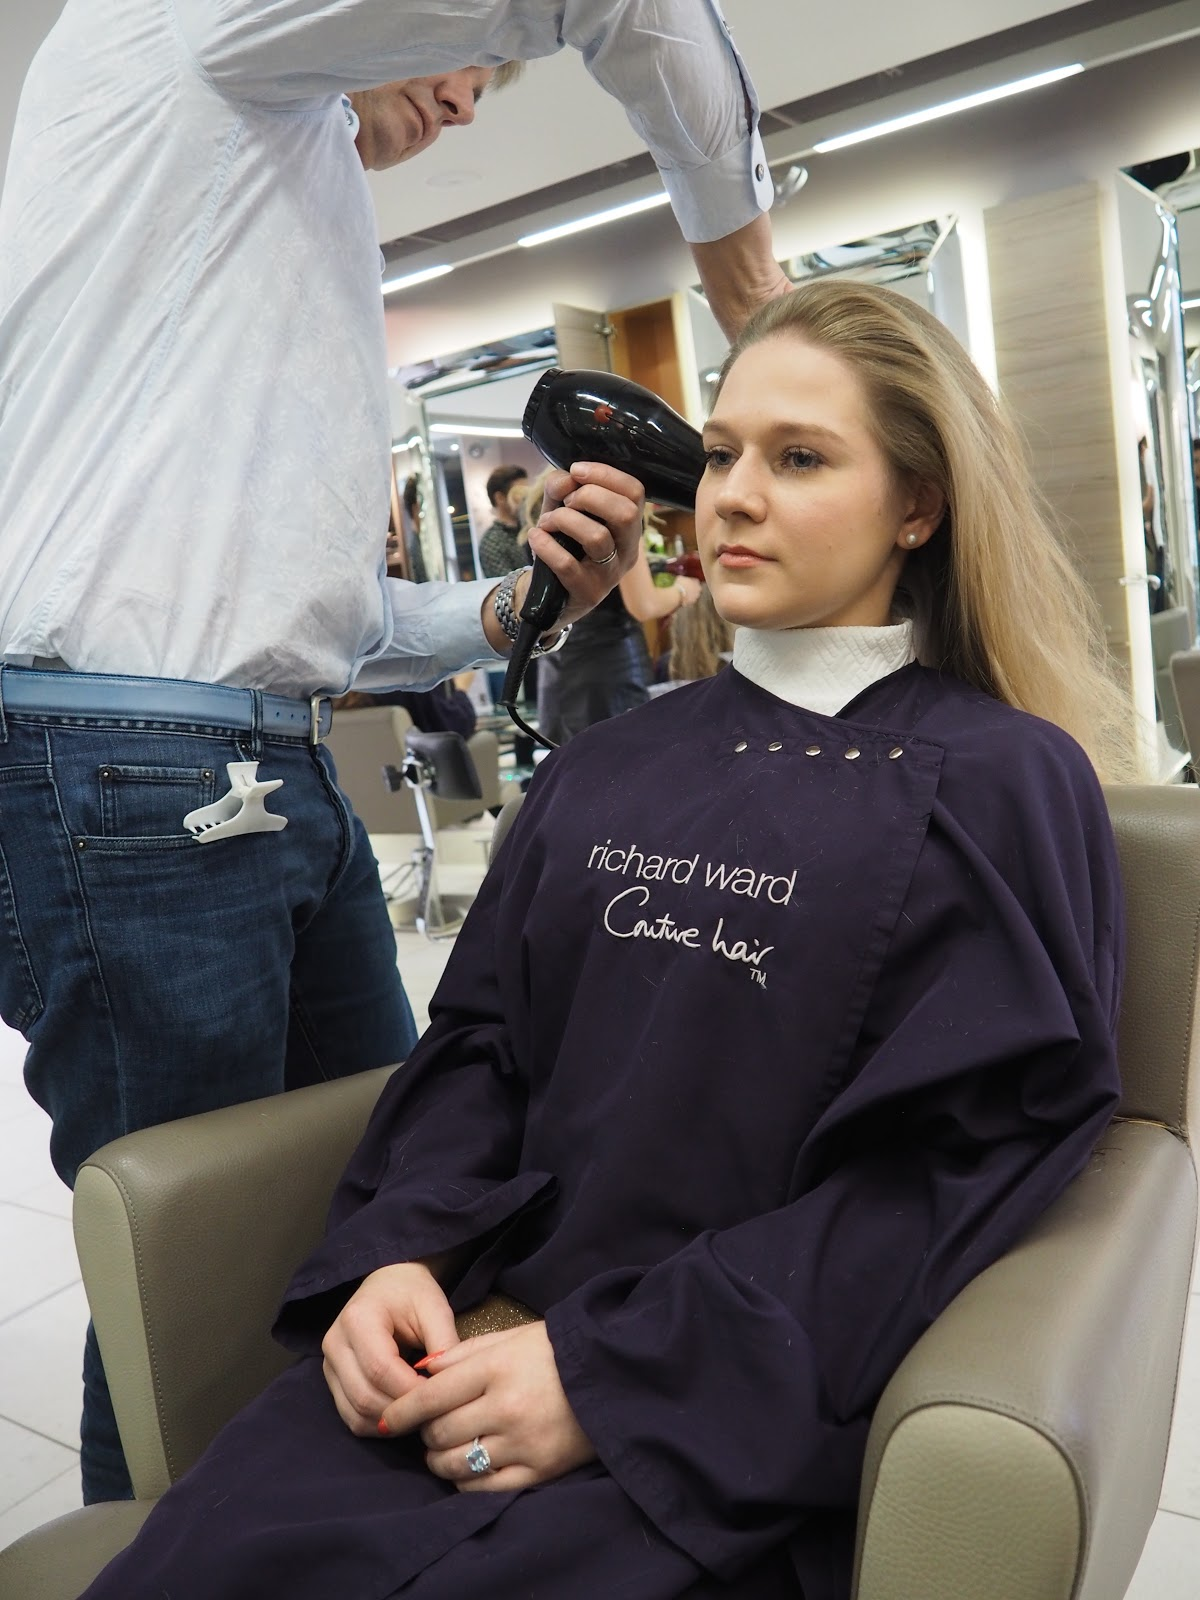 Blonde girl, Katie Matthews getting her hair blow dried by Richard Ward at the salon in Chelsea, London